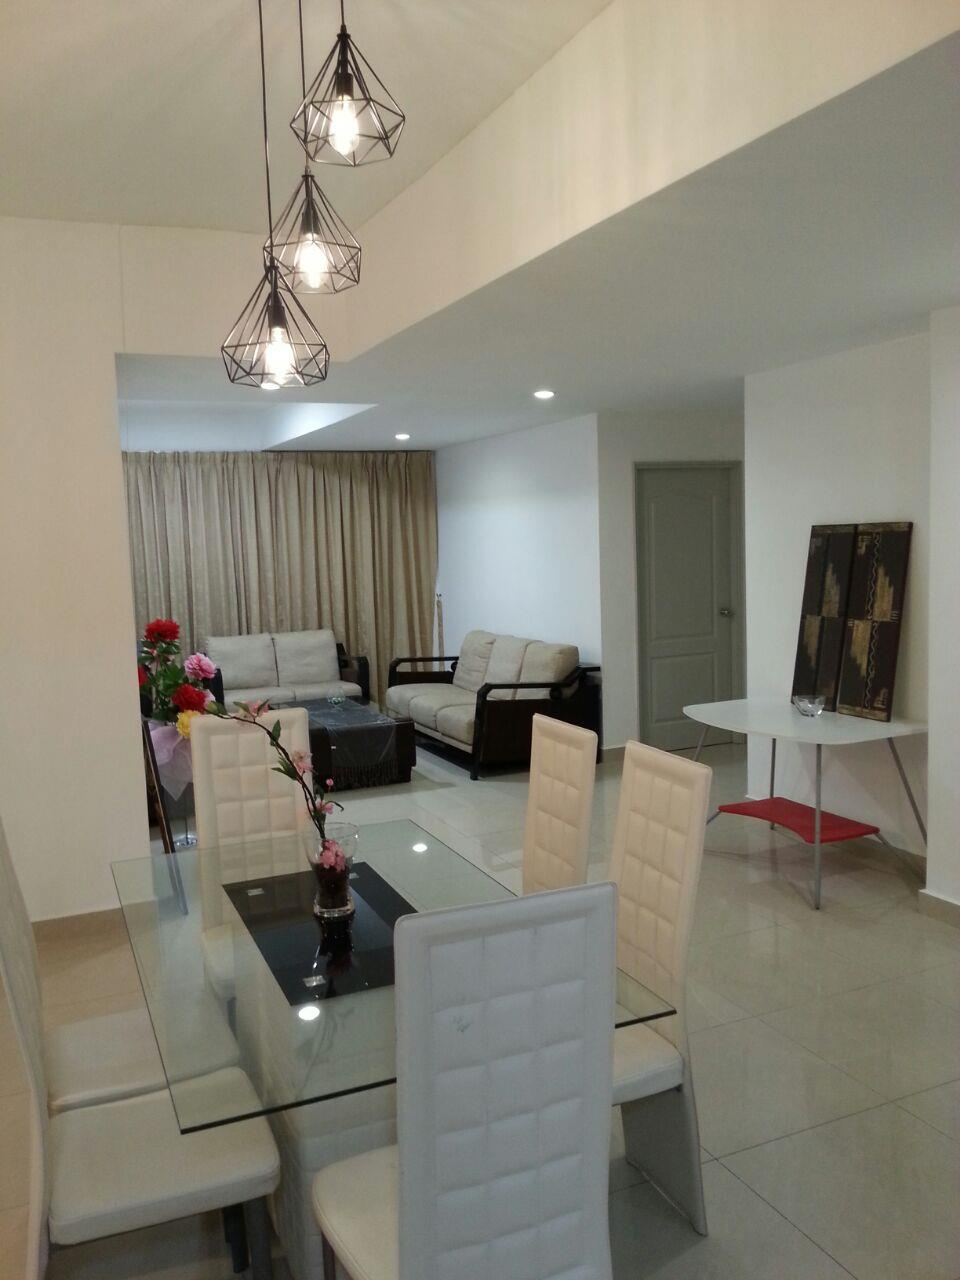 Subang Boulevard Condo for sale, SS 12, Fully Furnished, Subang Jaya